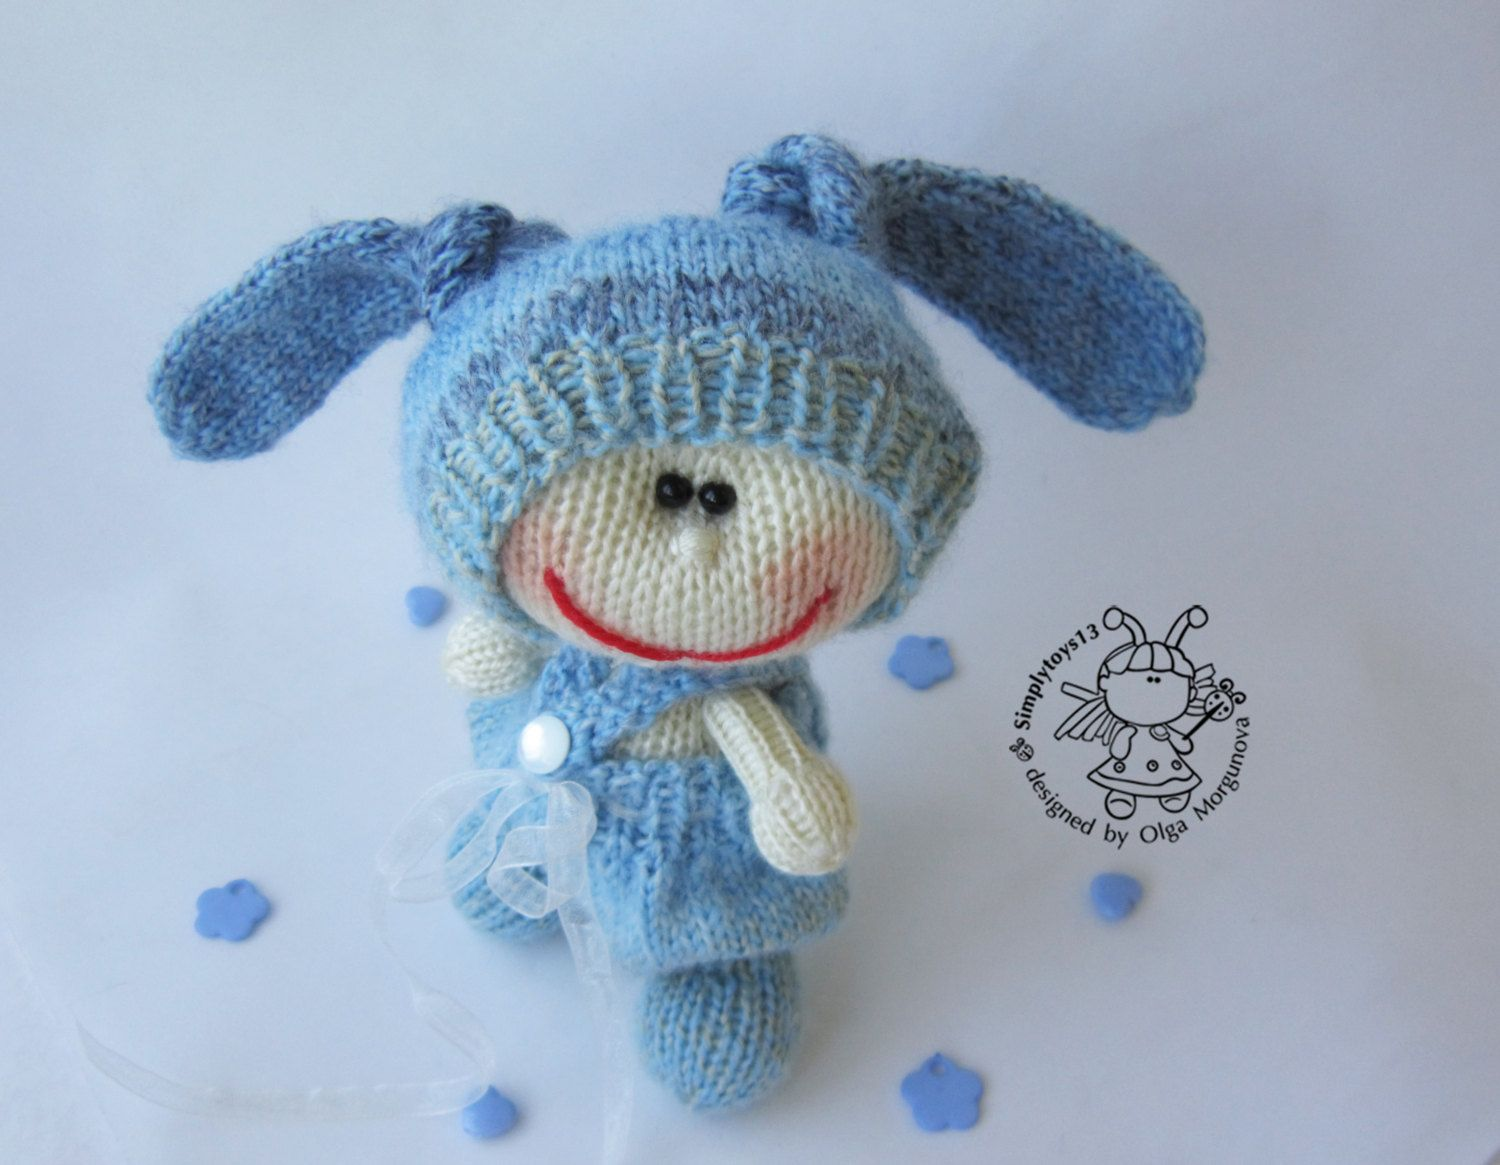 Pebble doll blue Bunny - knitting pattern (knitted round.  Amigurumi doll by simplytoys13 on Etsy